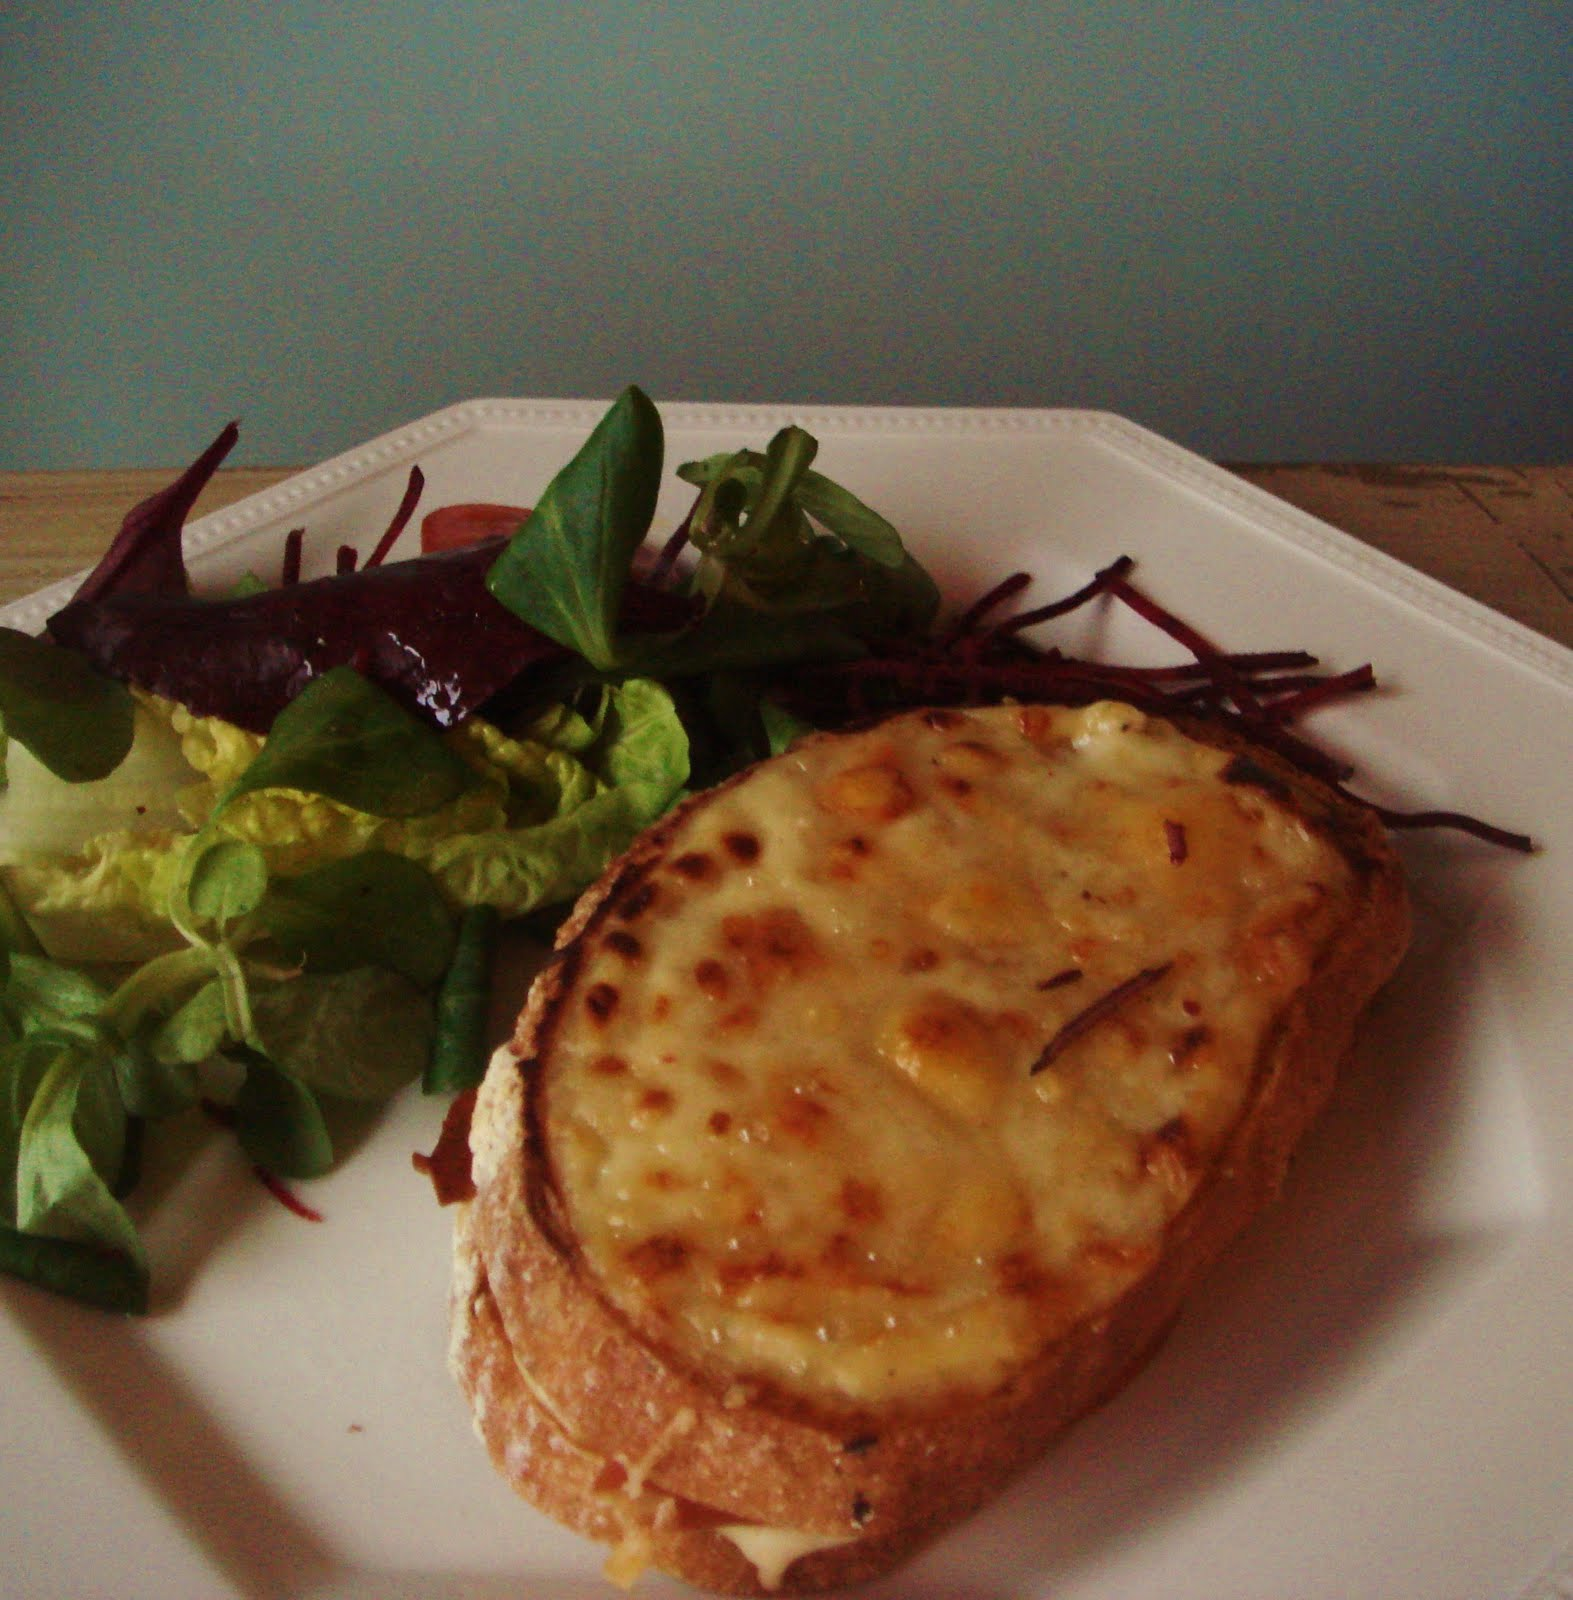 Stylishly Sated: French classic...Croque Monsieur